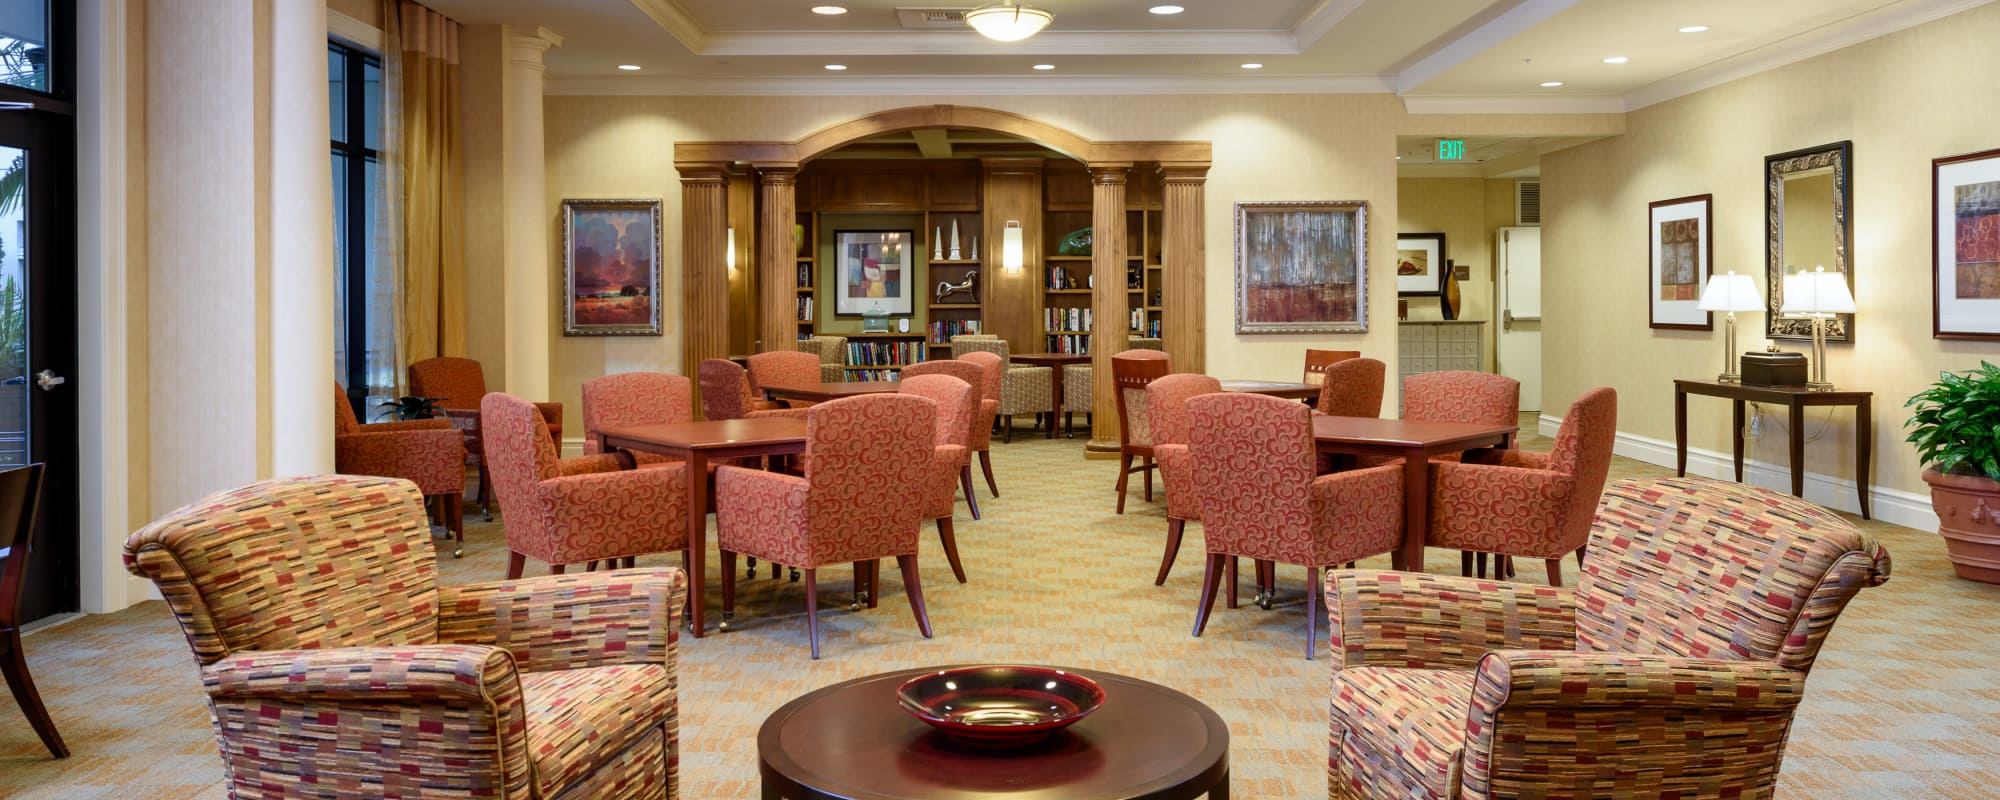 Common area at The Bellettini in Bellevue, Washington